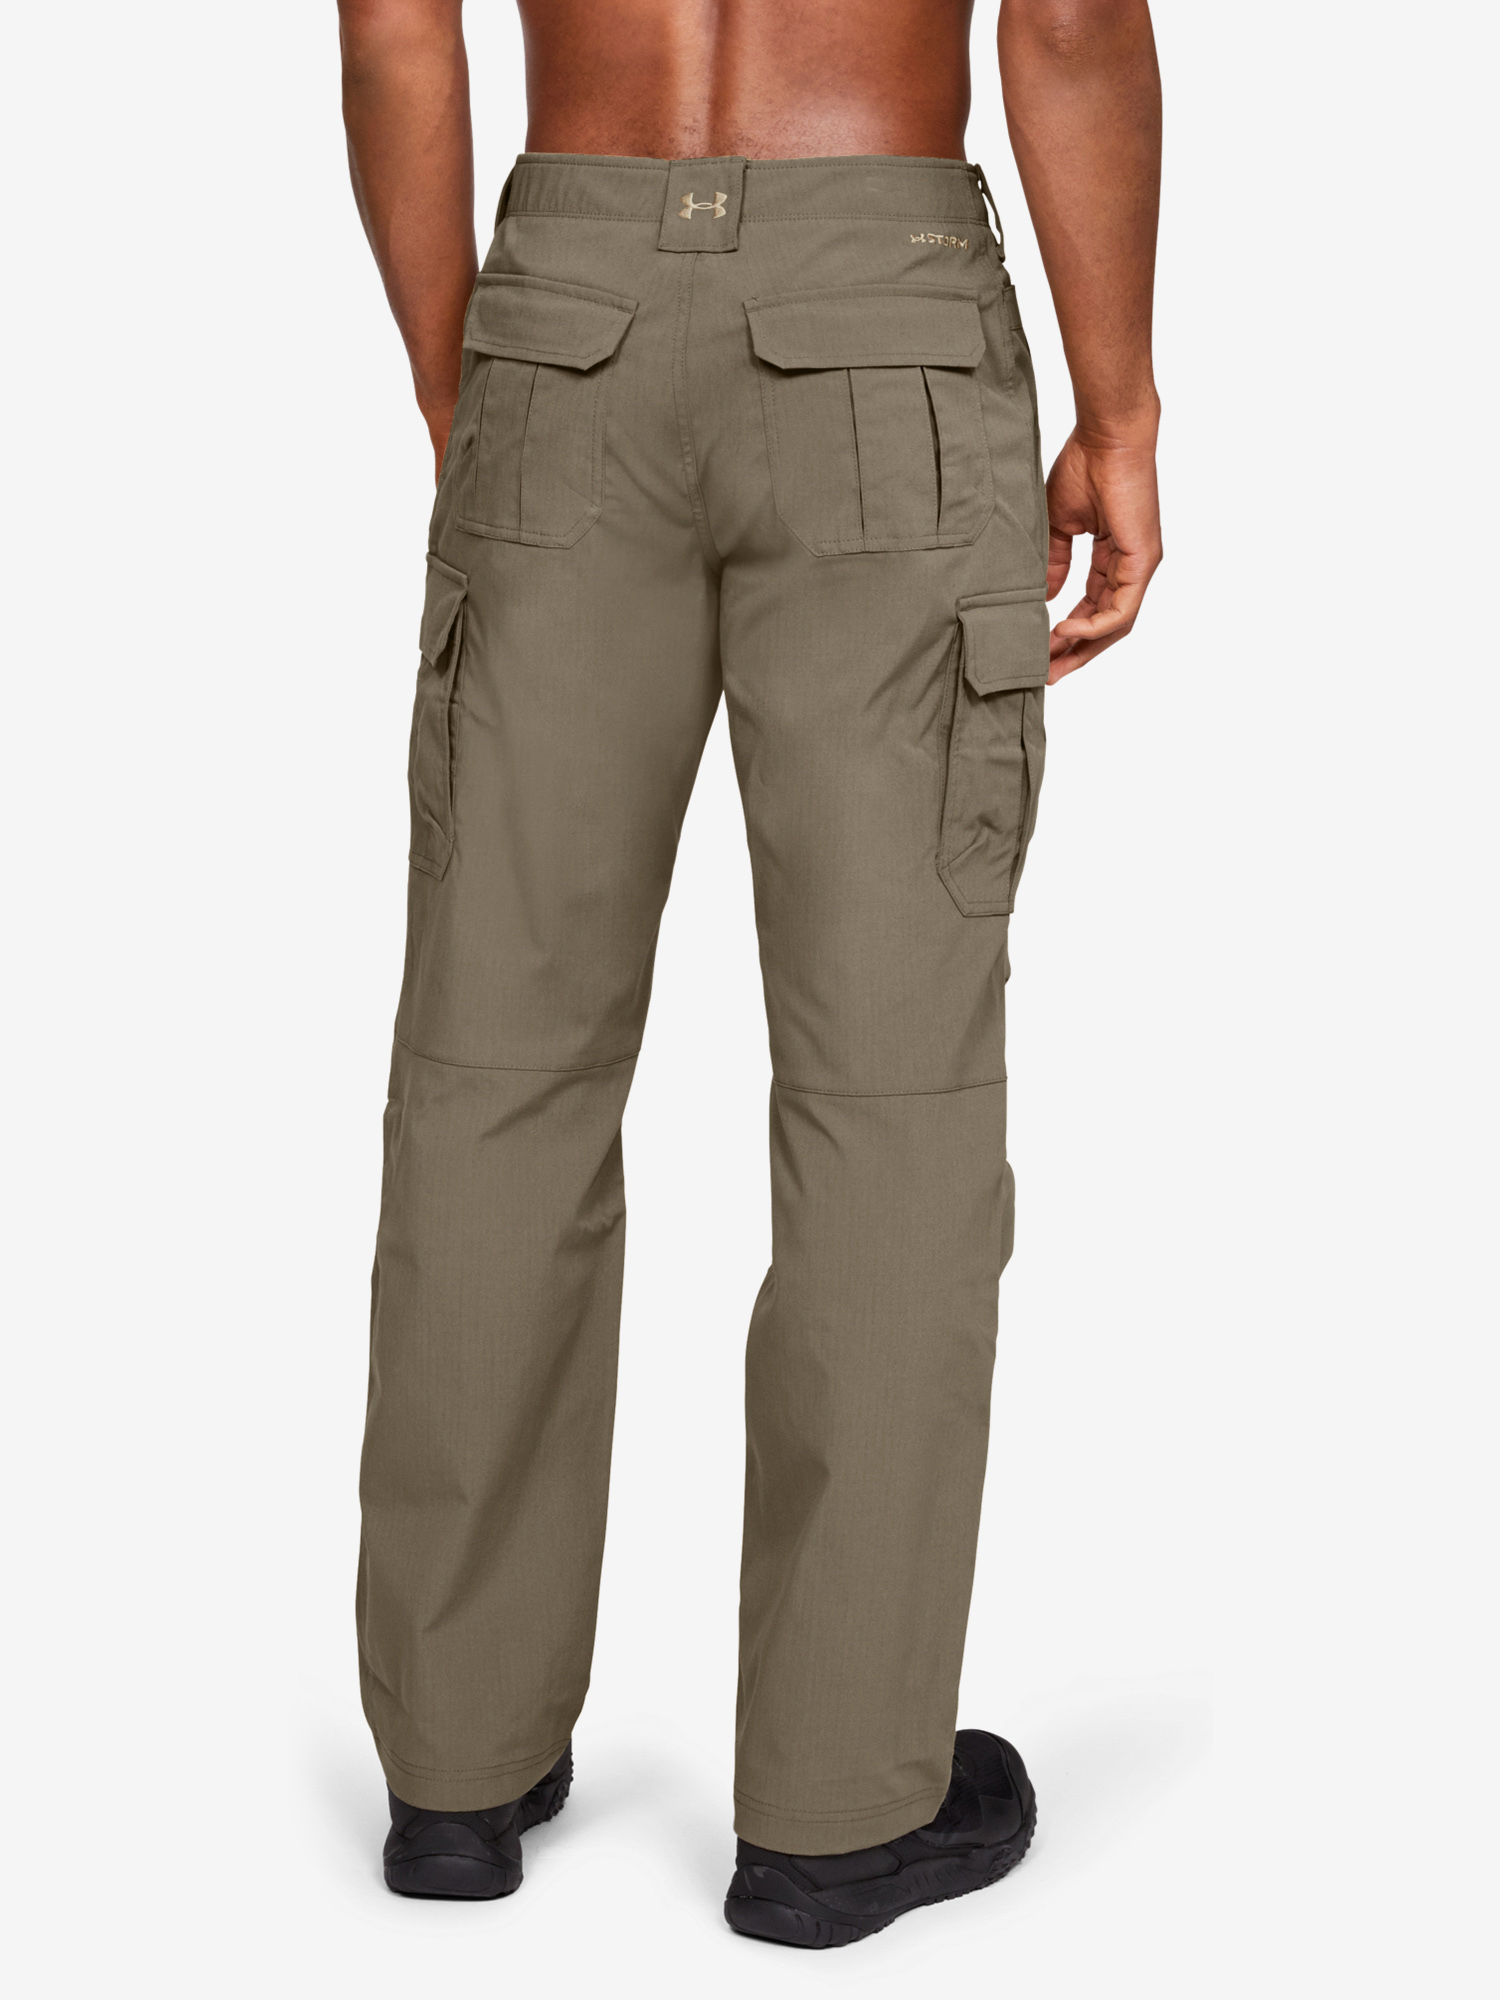 Nohavice Under Armour Tac Patrol Pant II-BRN (2)